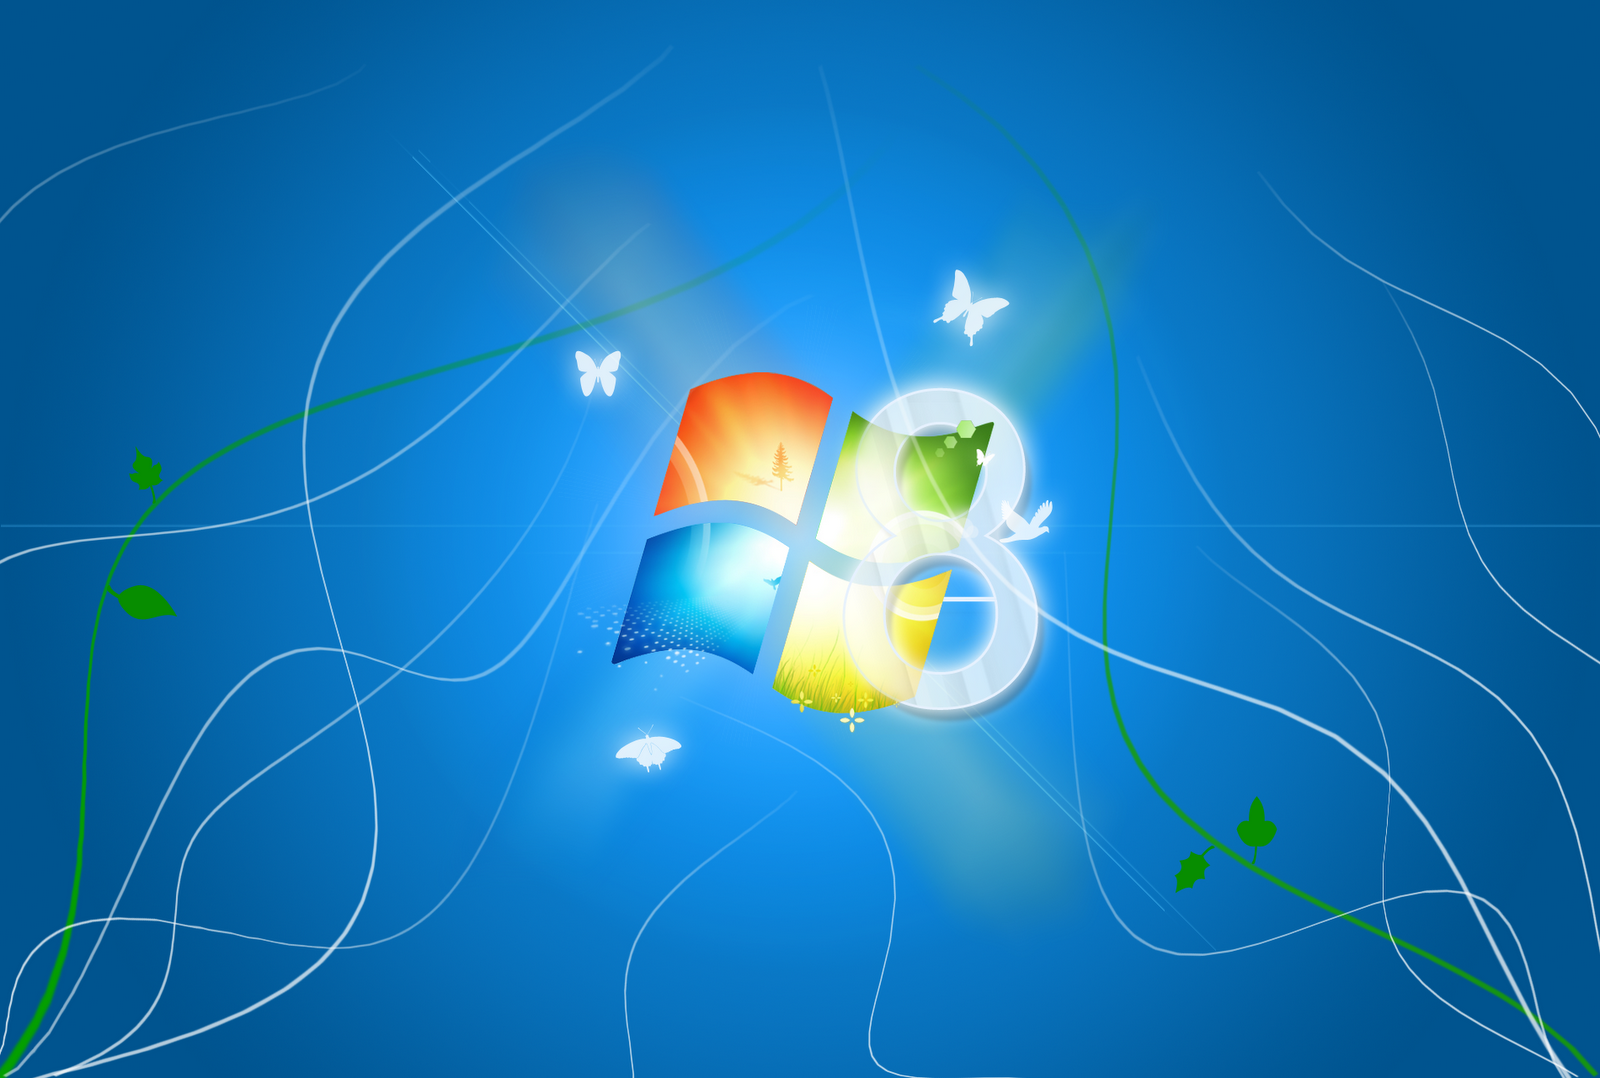 windows 8 default wallpaper download windows 8 wallpapers windows 1600x1078